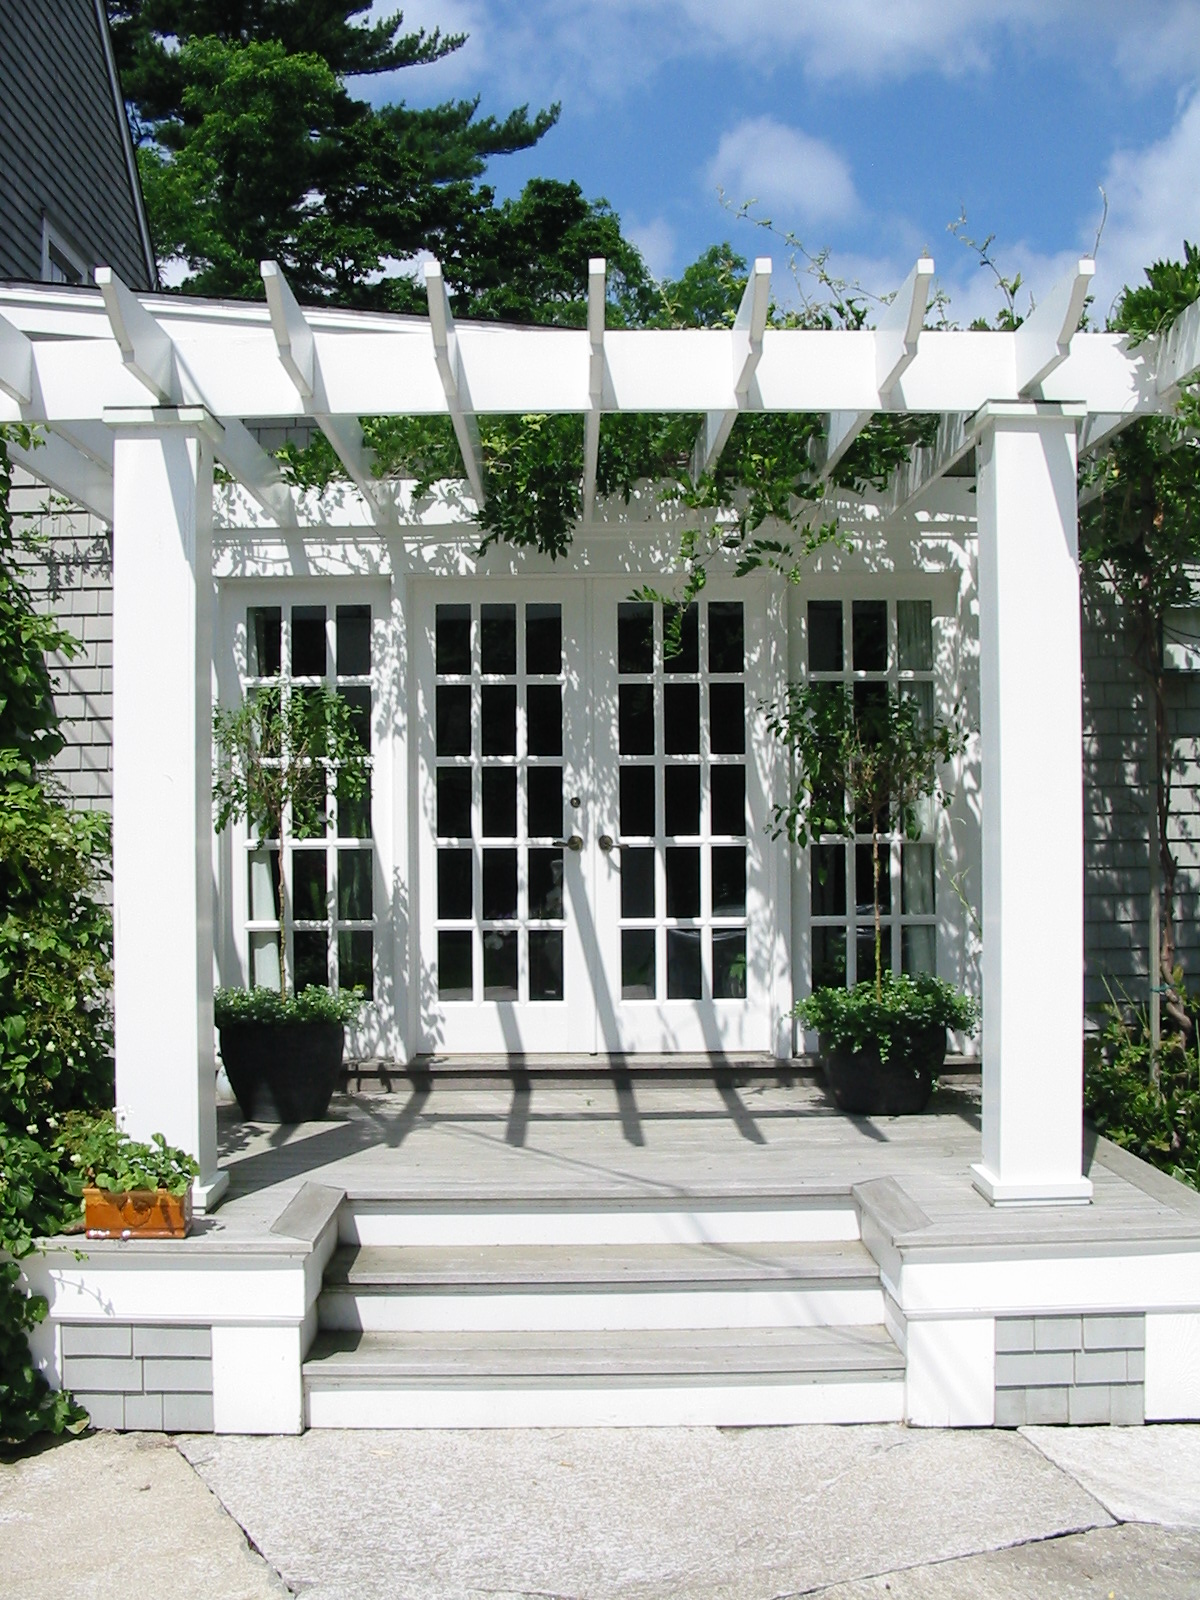 Pergola over Rear Entry